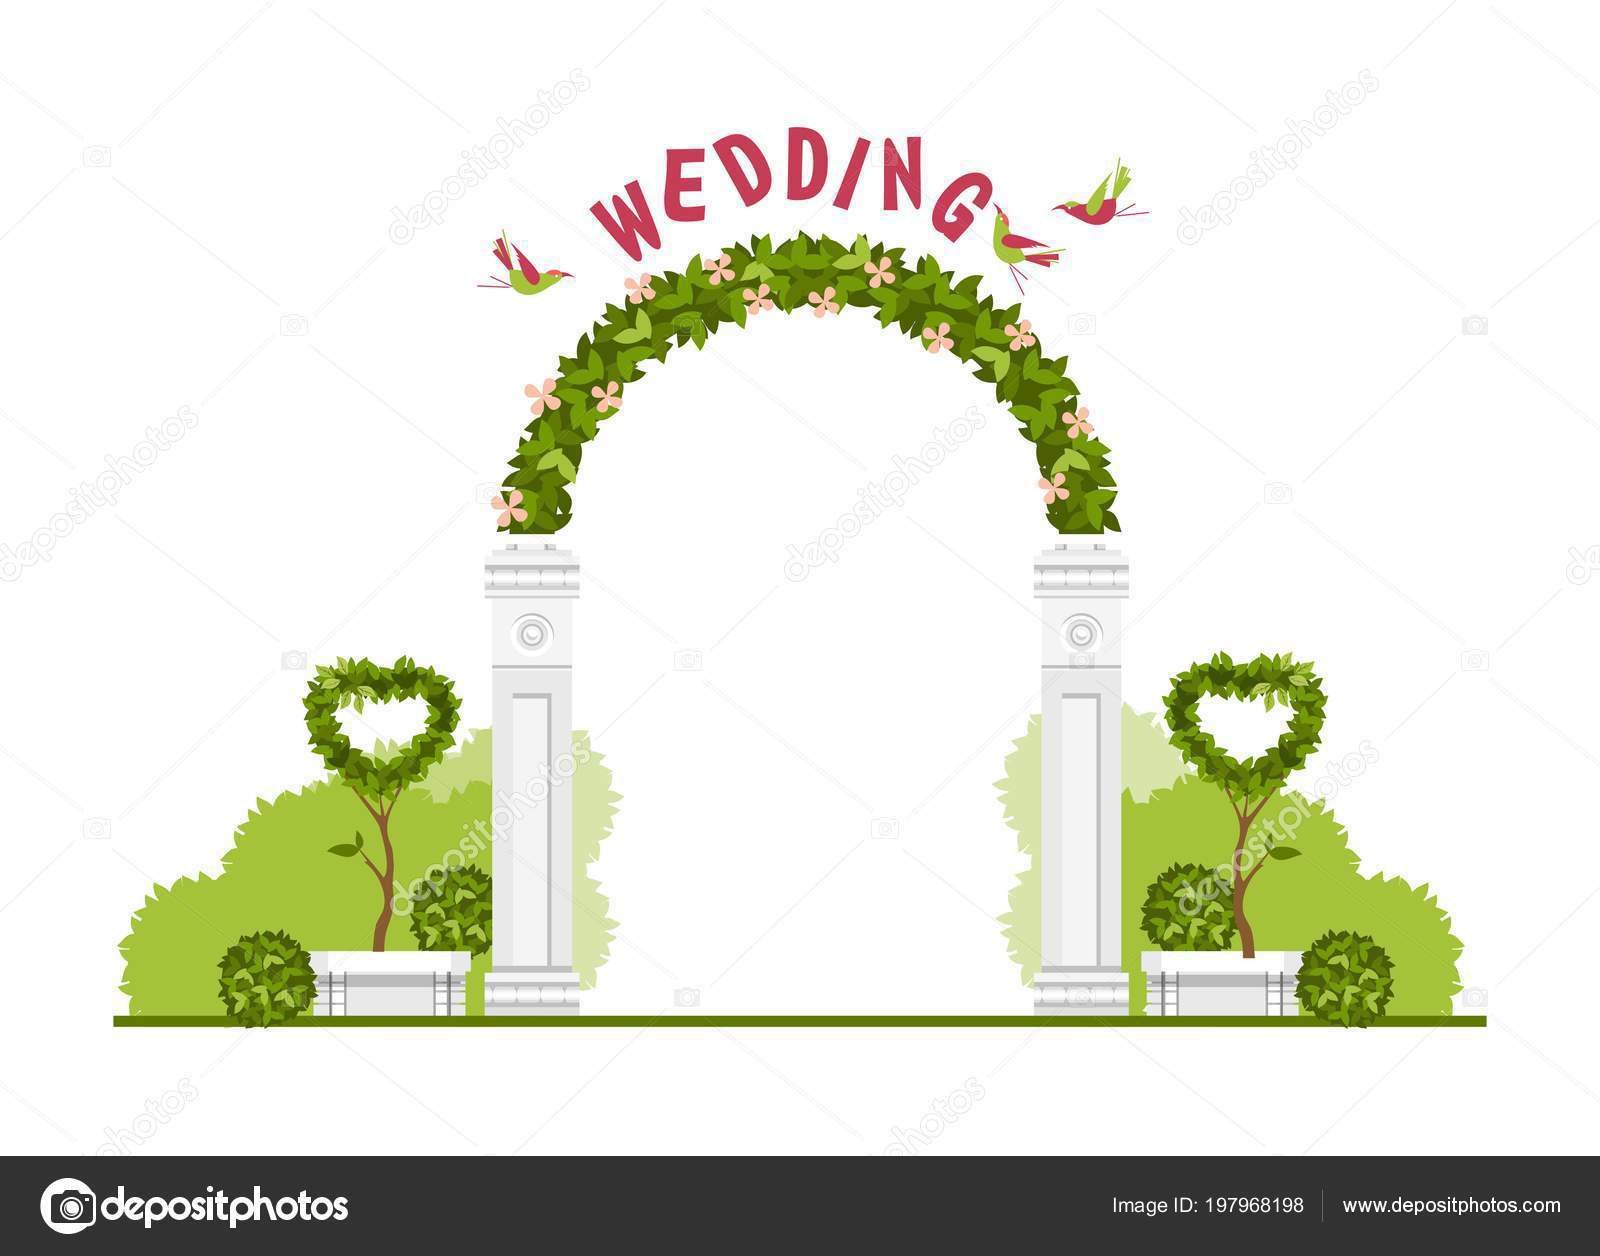 Wedding Arch White Background Plant Elements Flowers Park Beautiful Figures Stock Vector C Marrishuannna 197968198